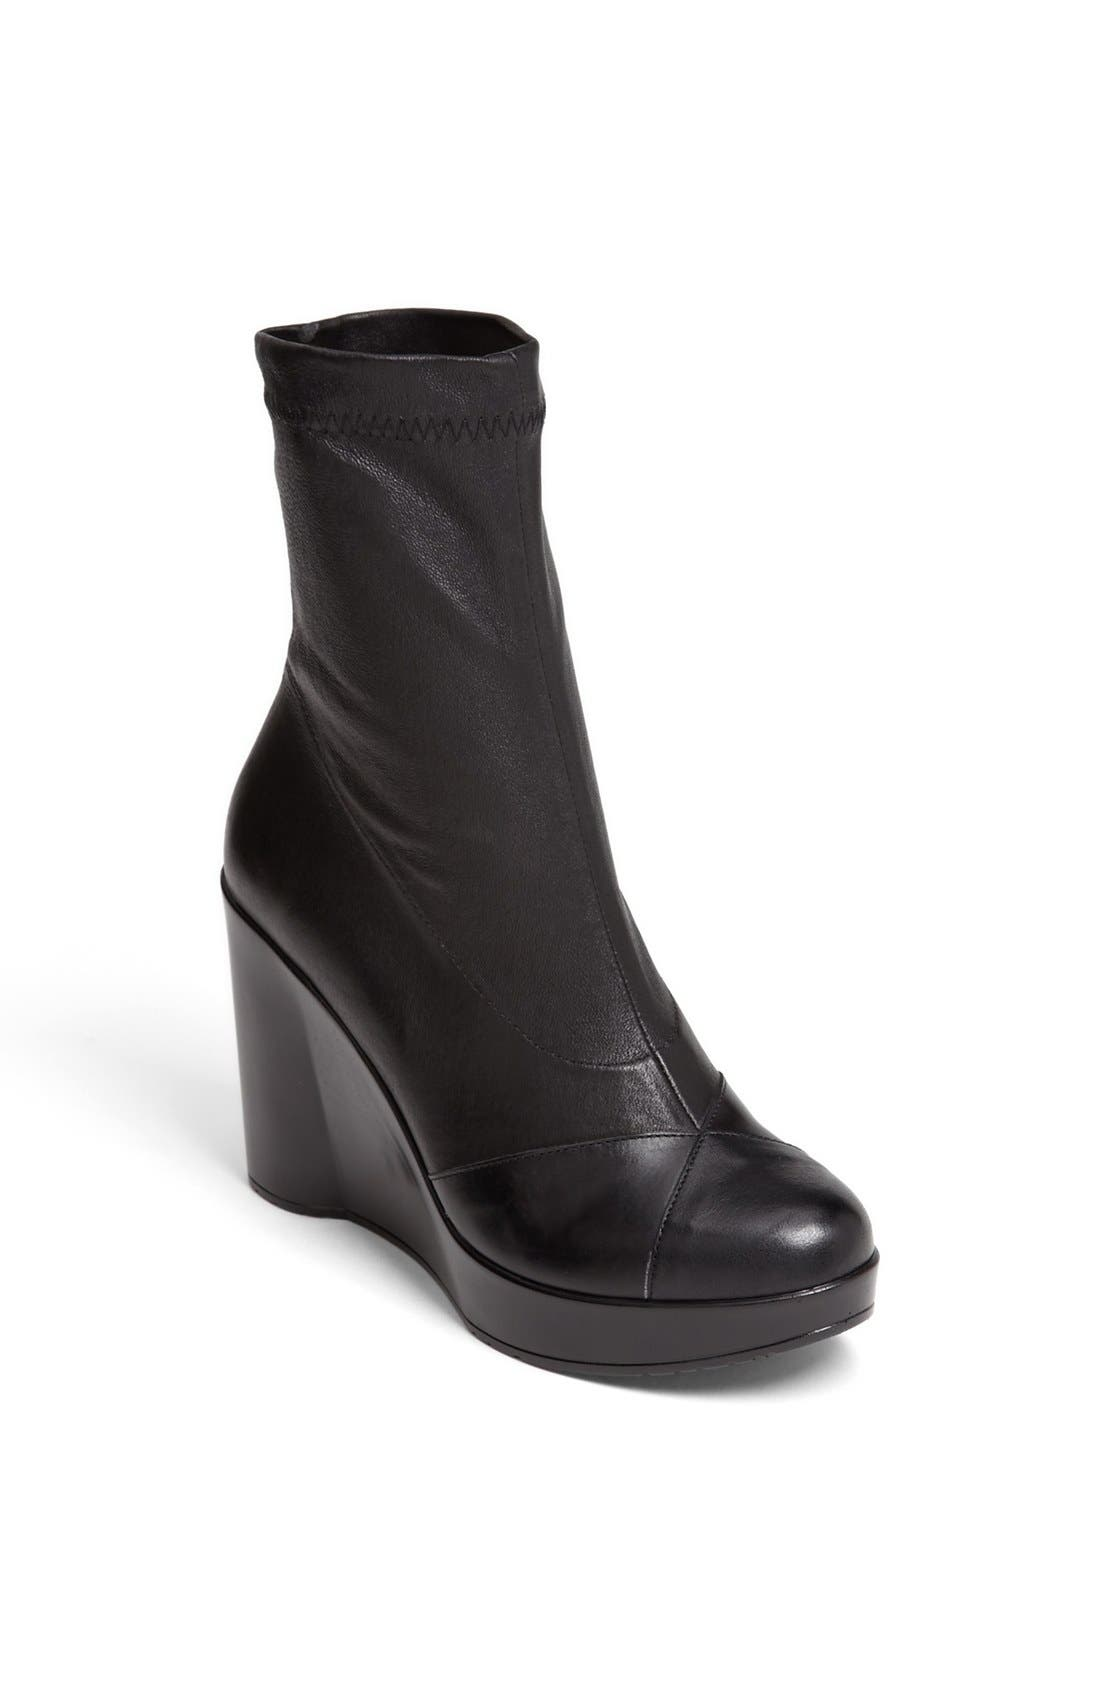 Main Image - Robert Clergerie 'Cendre' Wedge Boot